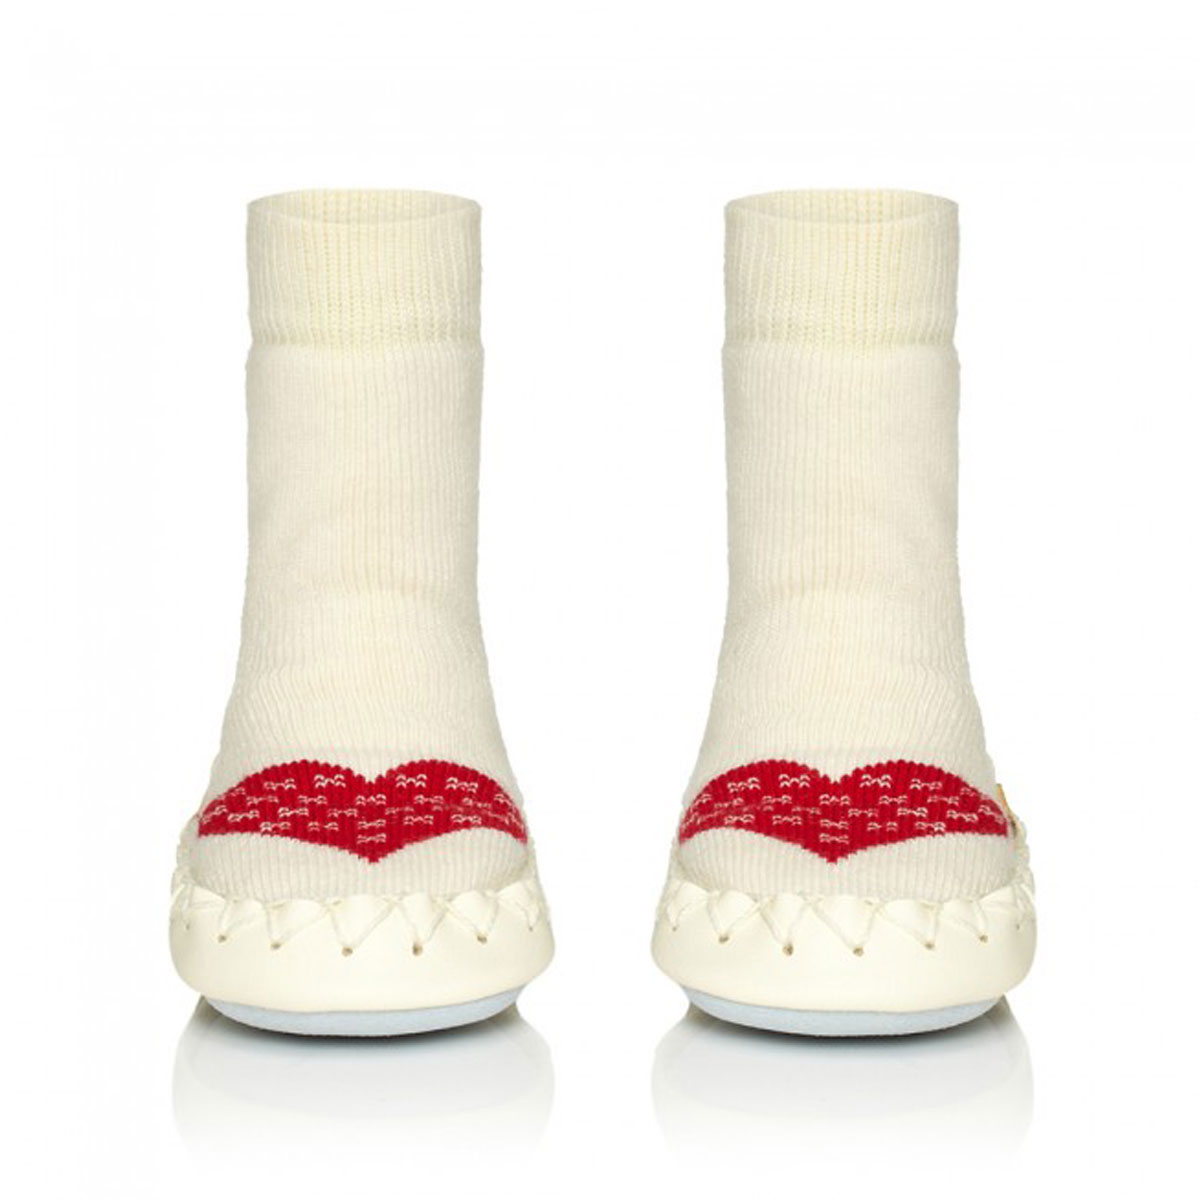 Moccis Sock Mocassins in Cream with Red Heart